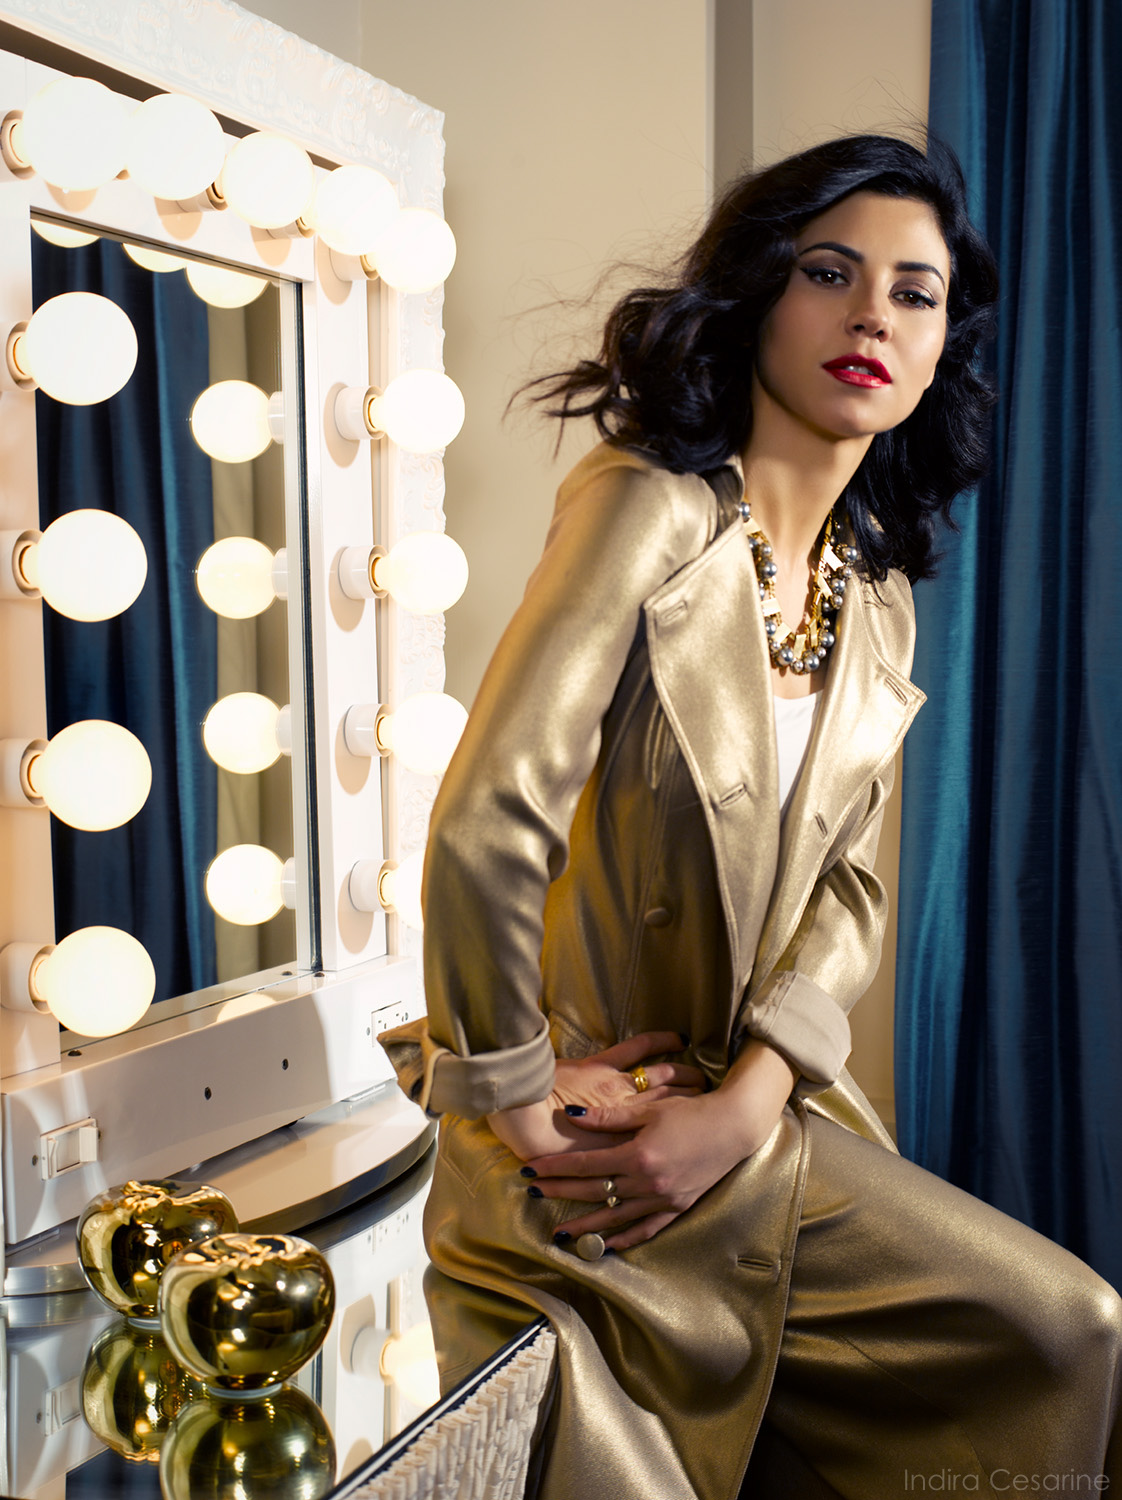 Marina-Diamonds-Photography-Indira-Cesarine-012.jpg